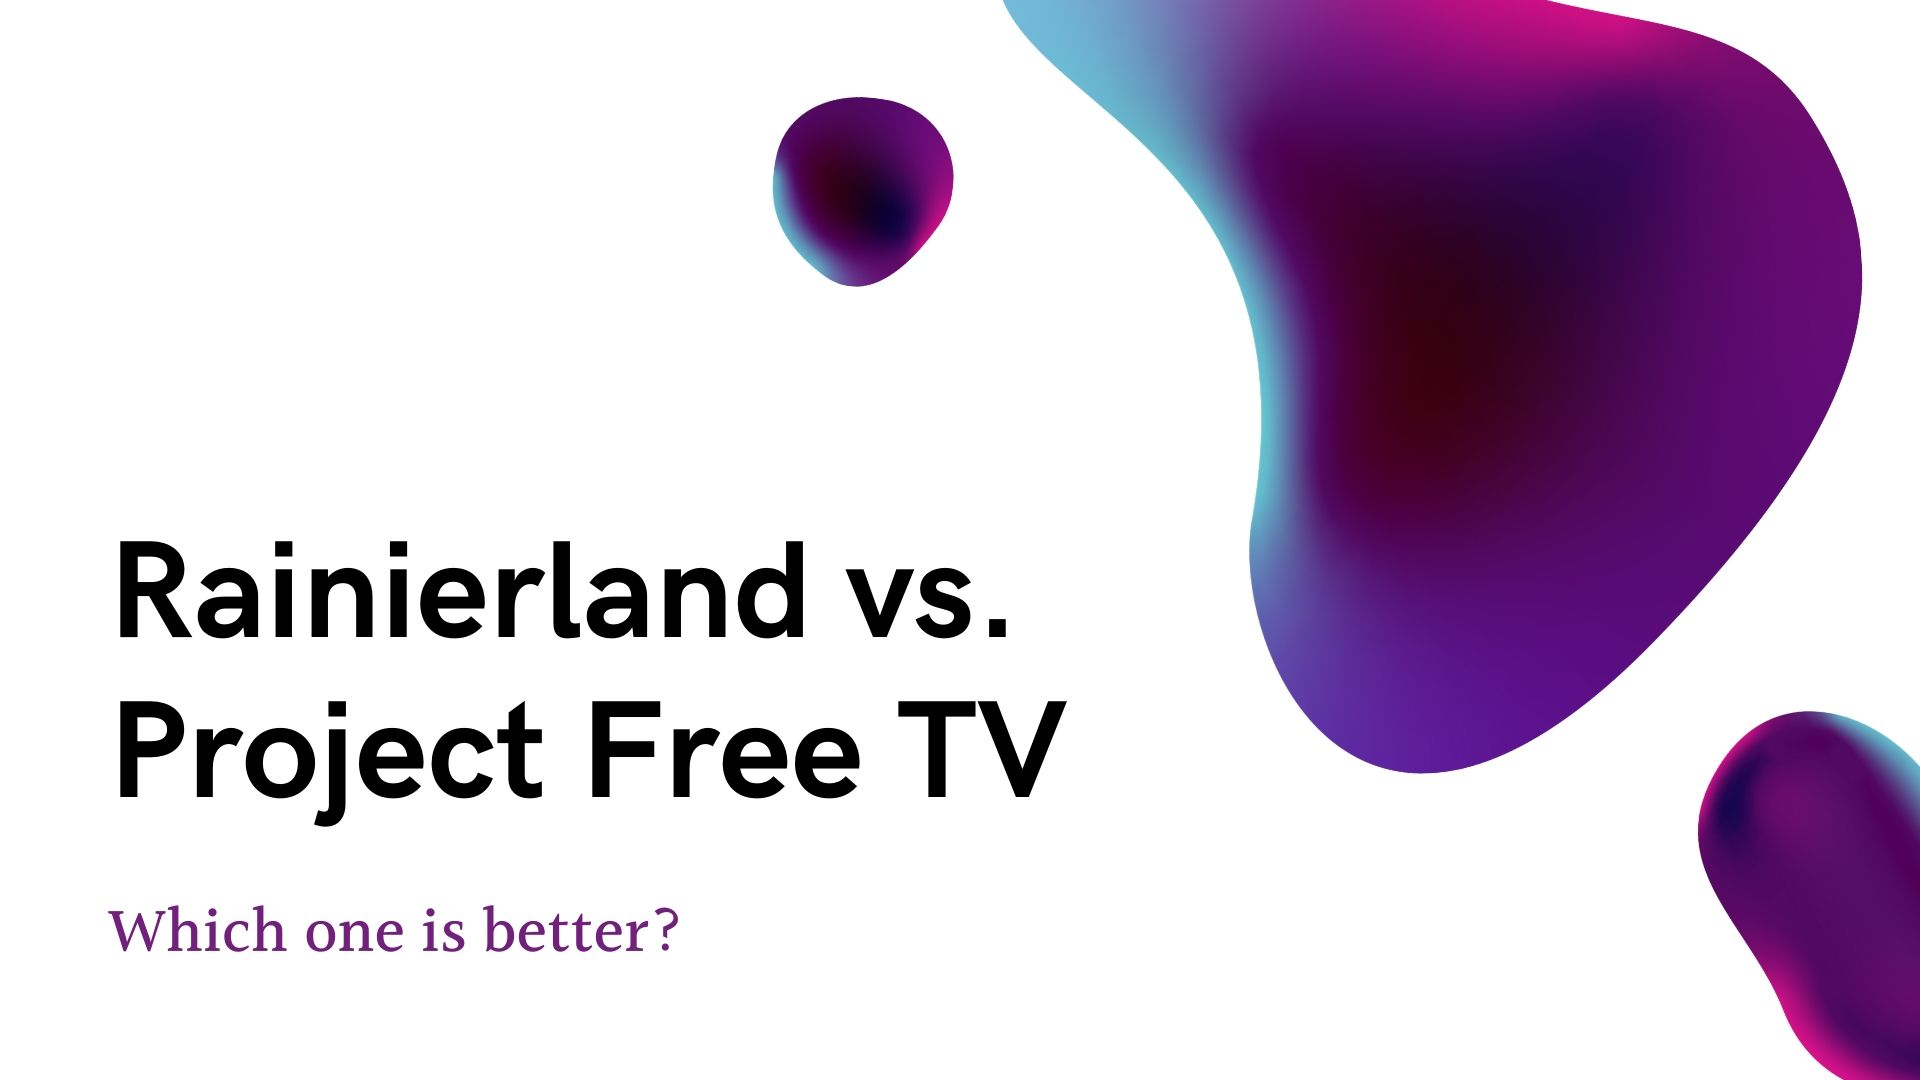 Rainierland vs. Project Free TV